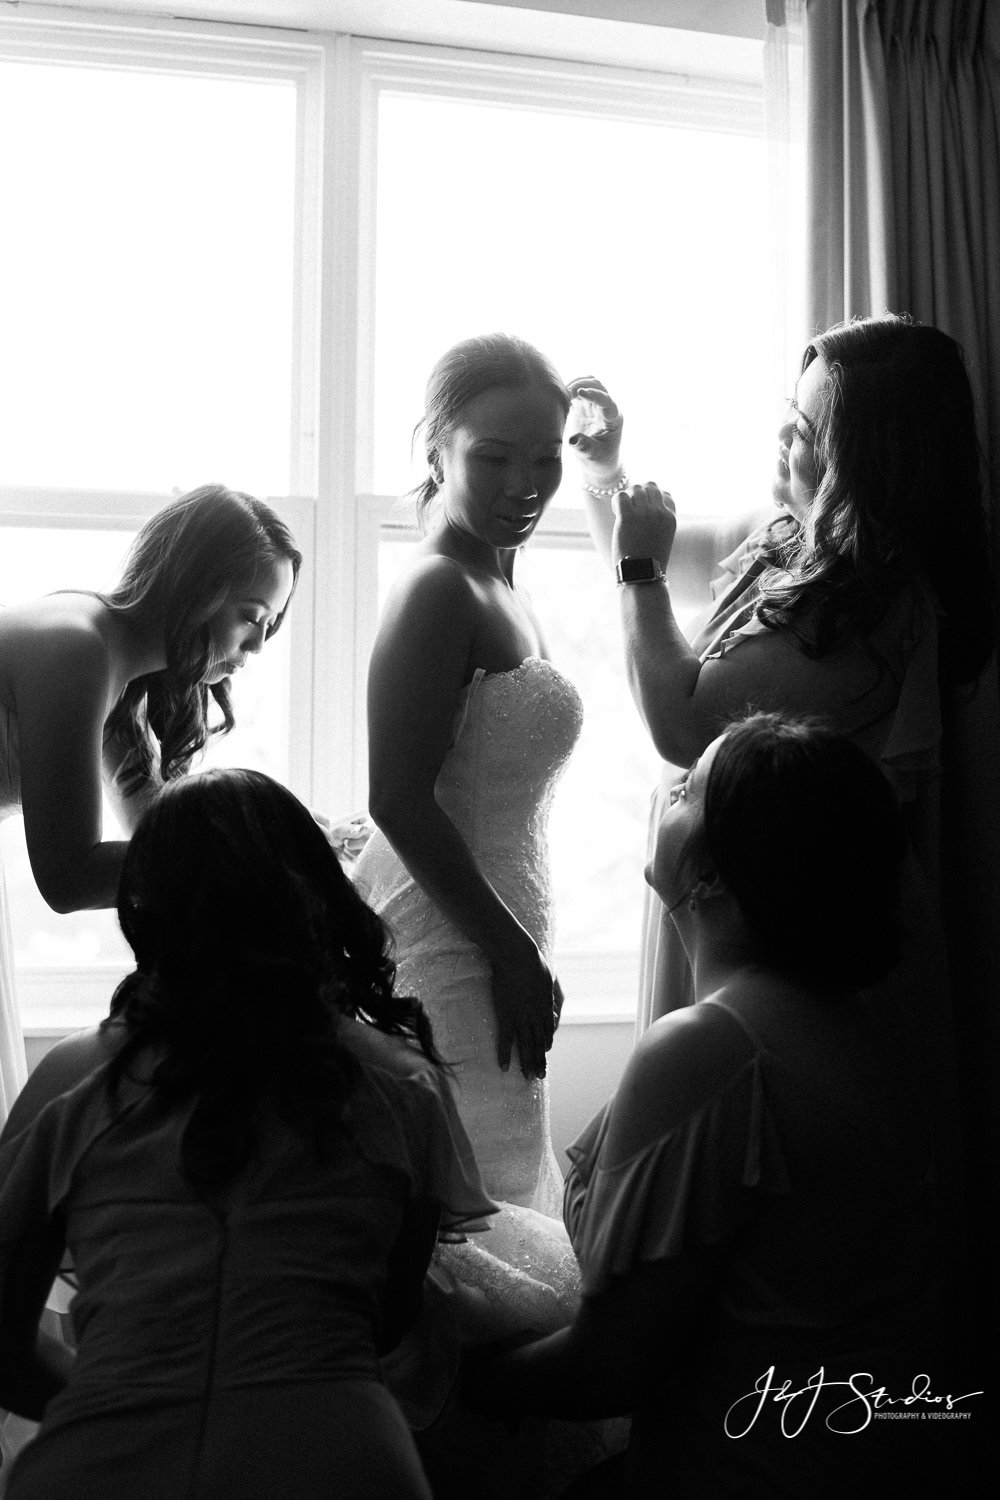 bride and bridesmaids at window getting ready for wedding